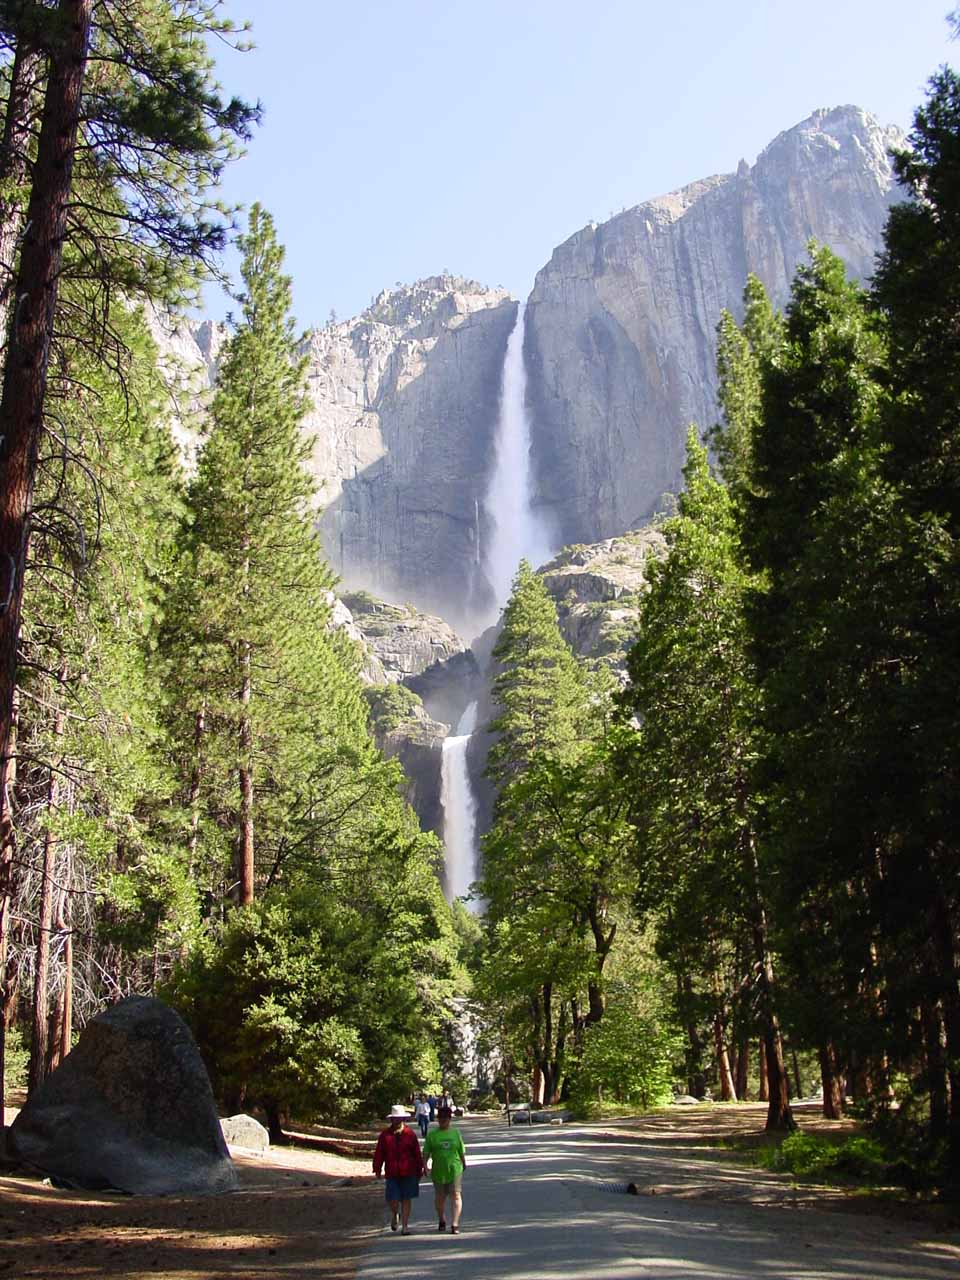 6. YOSEMITE FALLS [Yosemite National Park (California), USA]